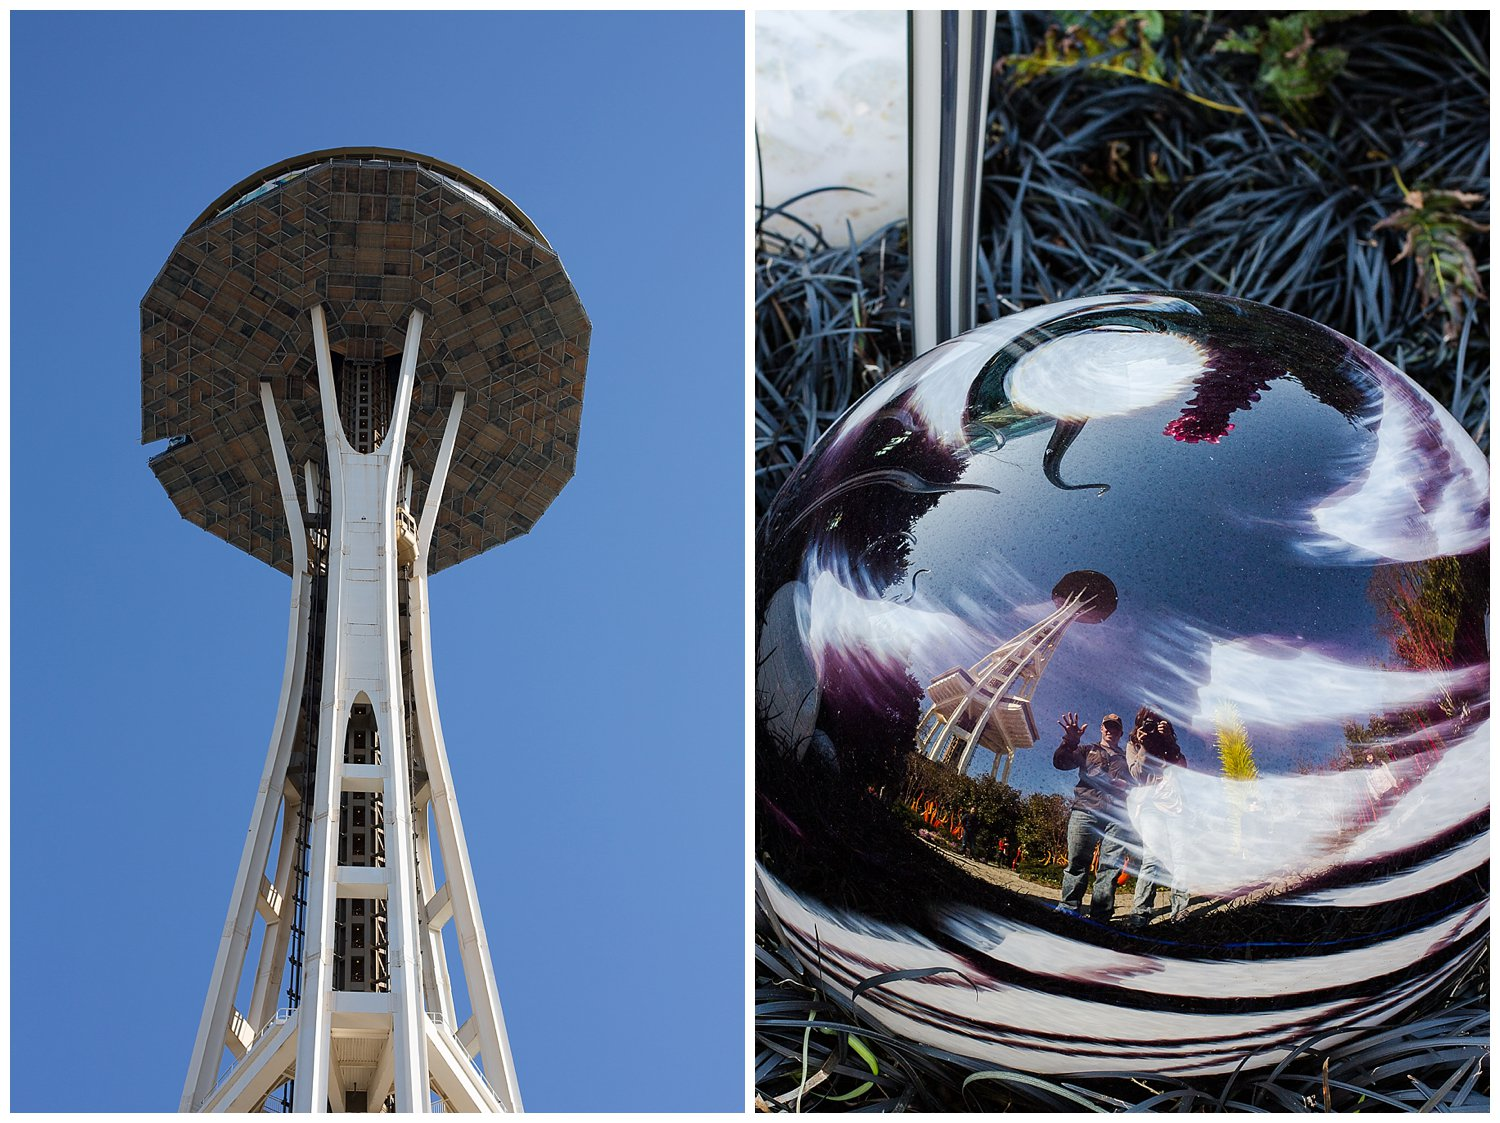 A little picture of us in the glass with a reflection of the Space Needle.